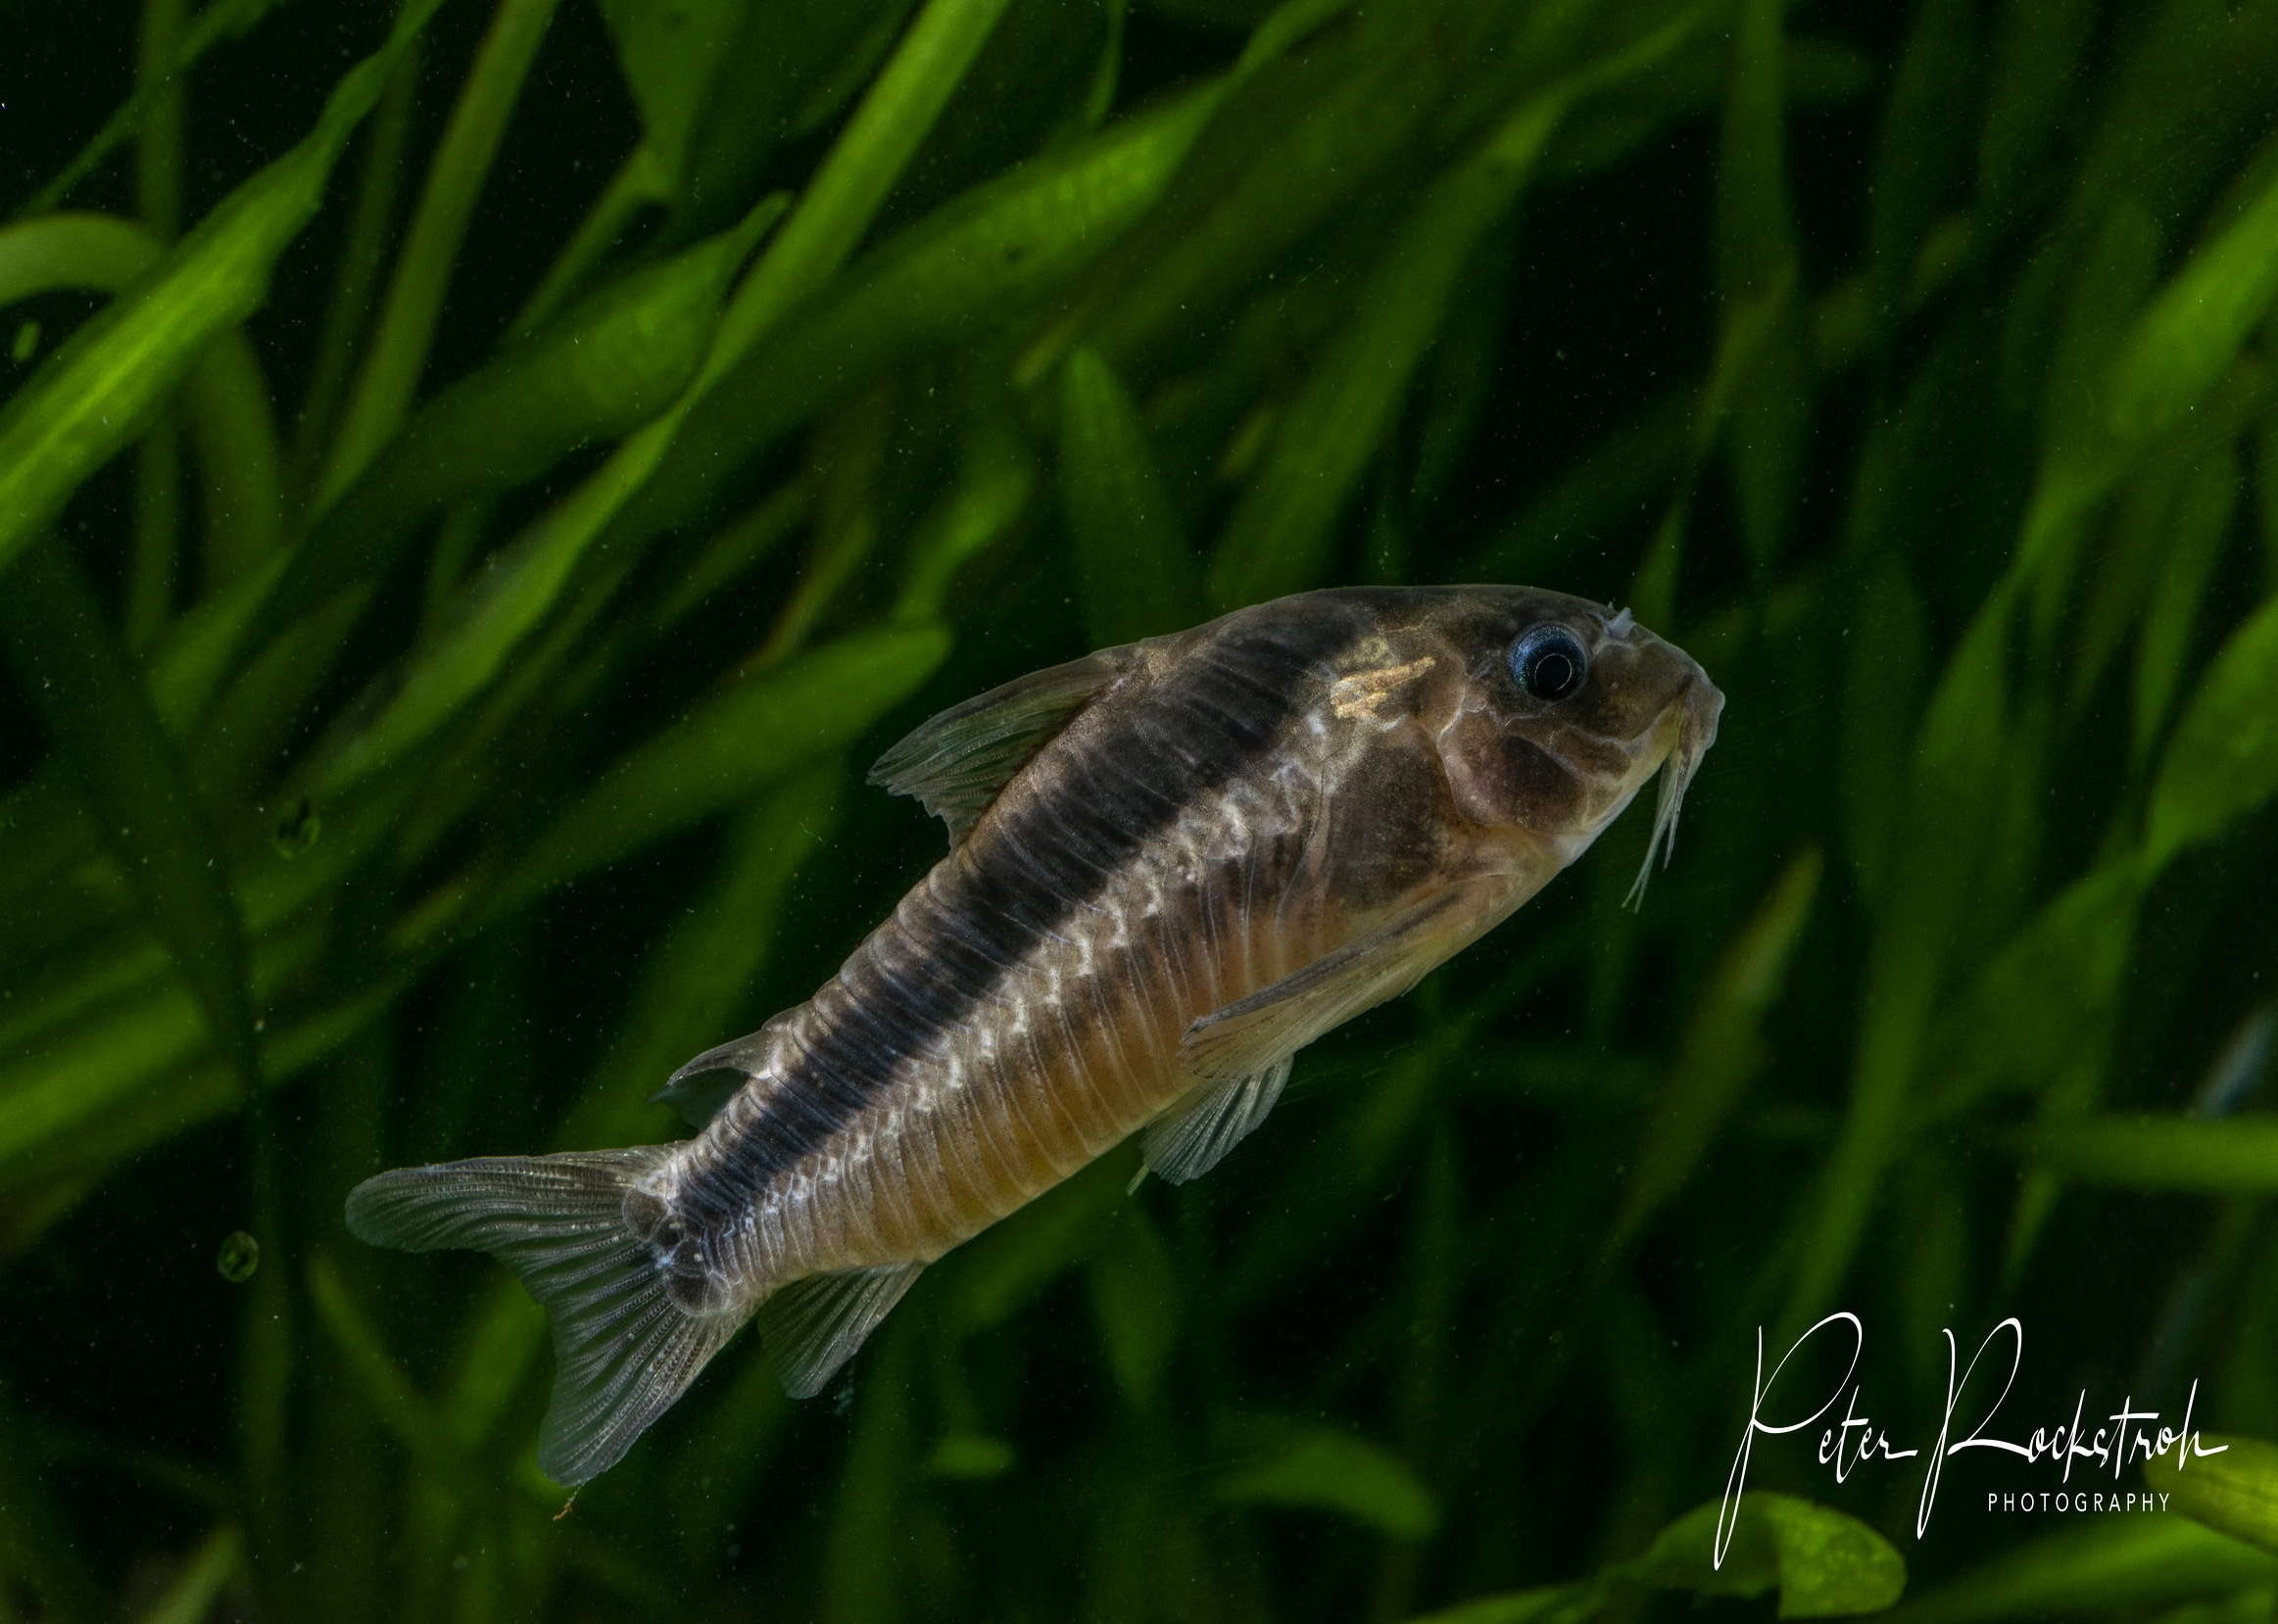 The well-known Rusty Cory catfish,  Corydoras rabauti